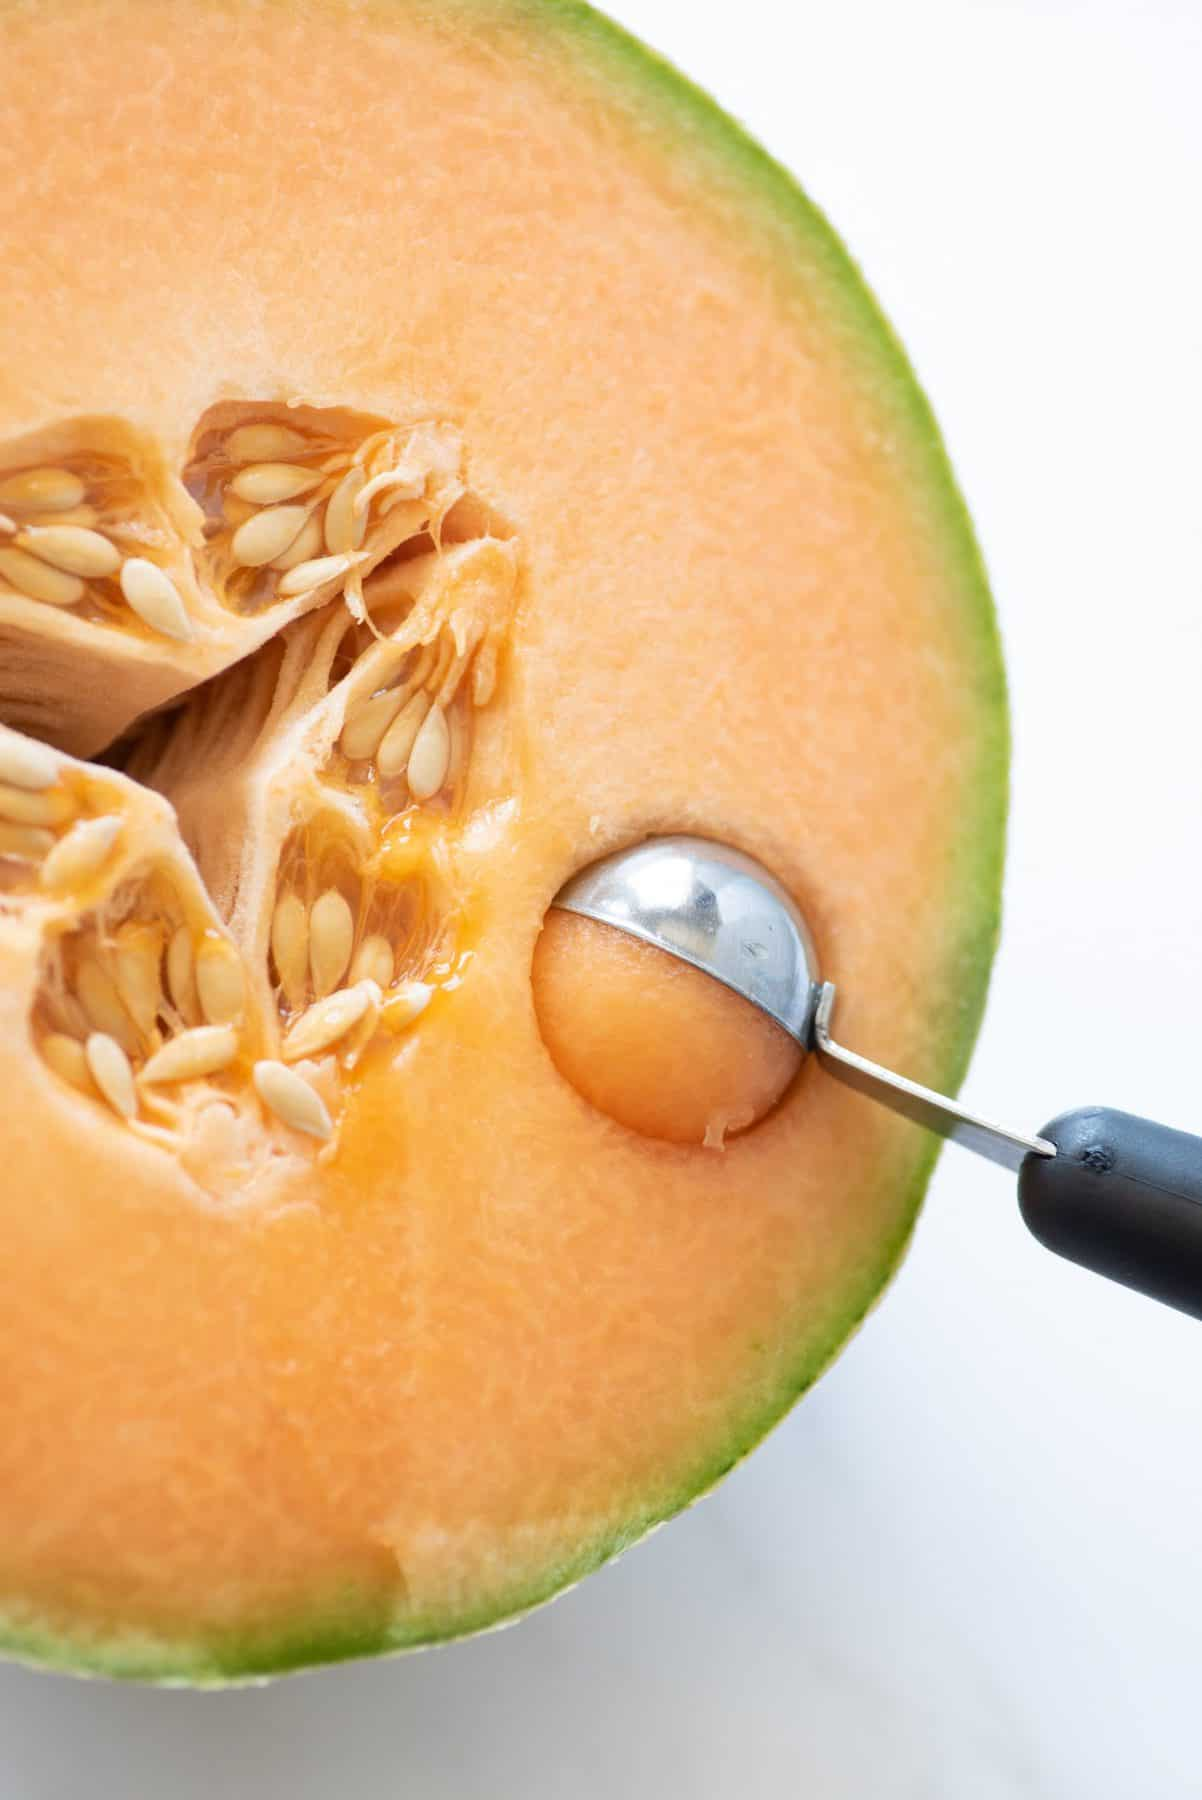 Close-up of melon baller scooping into the cut side of a cantaloupe half.